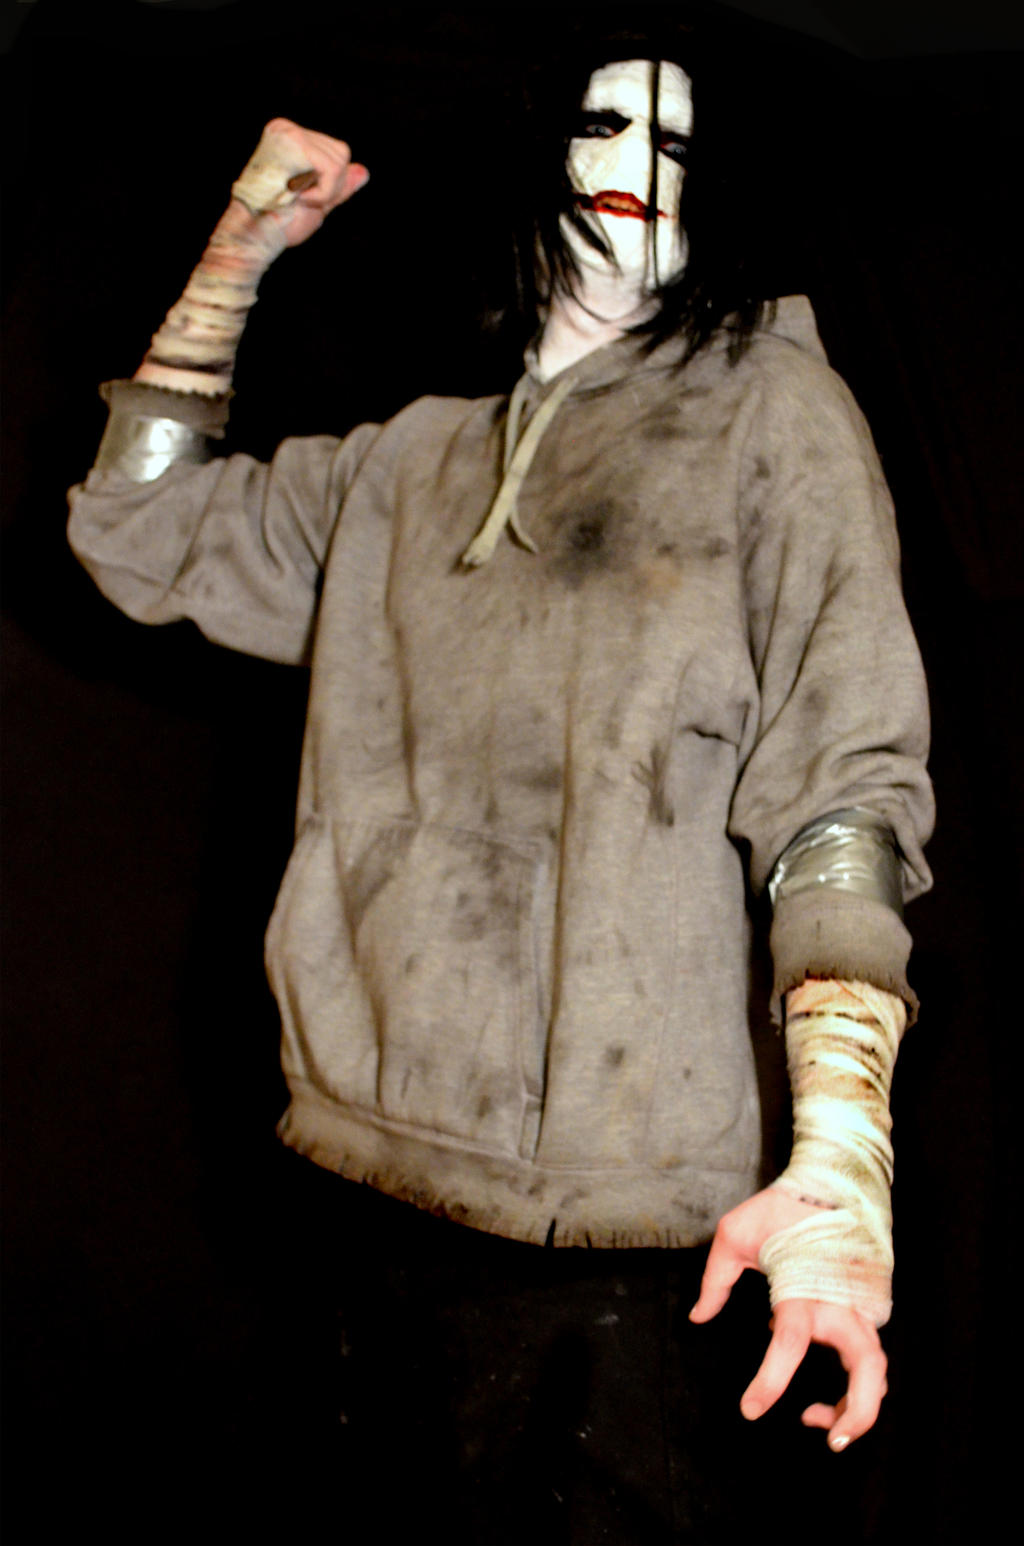 Creepypasta Cosplay Jeff Images & Pictures - Becuo